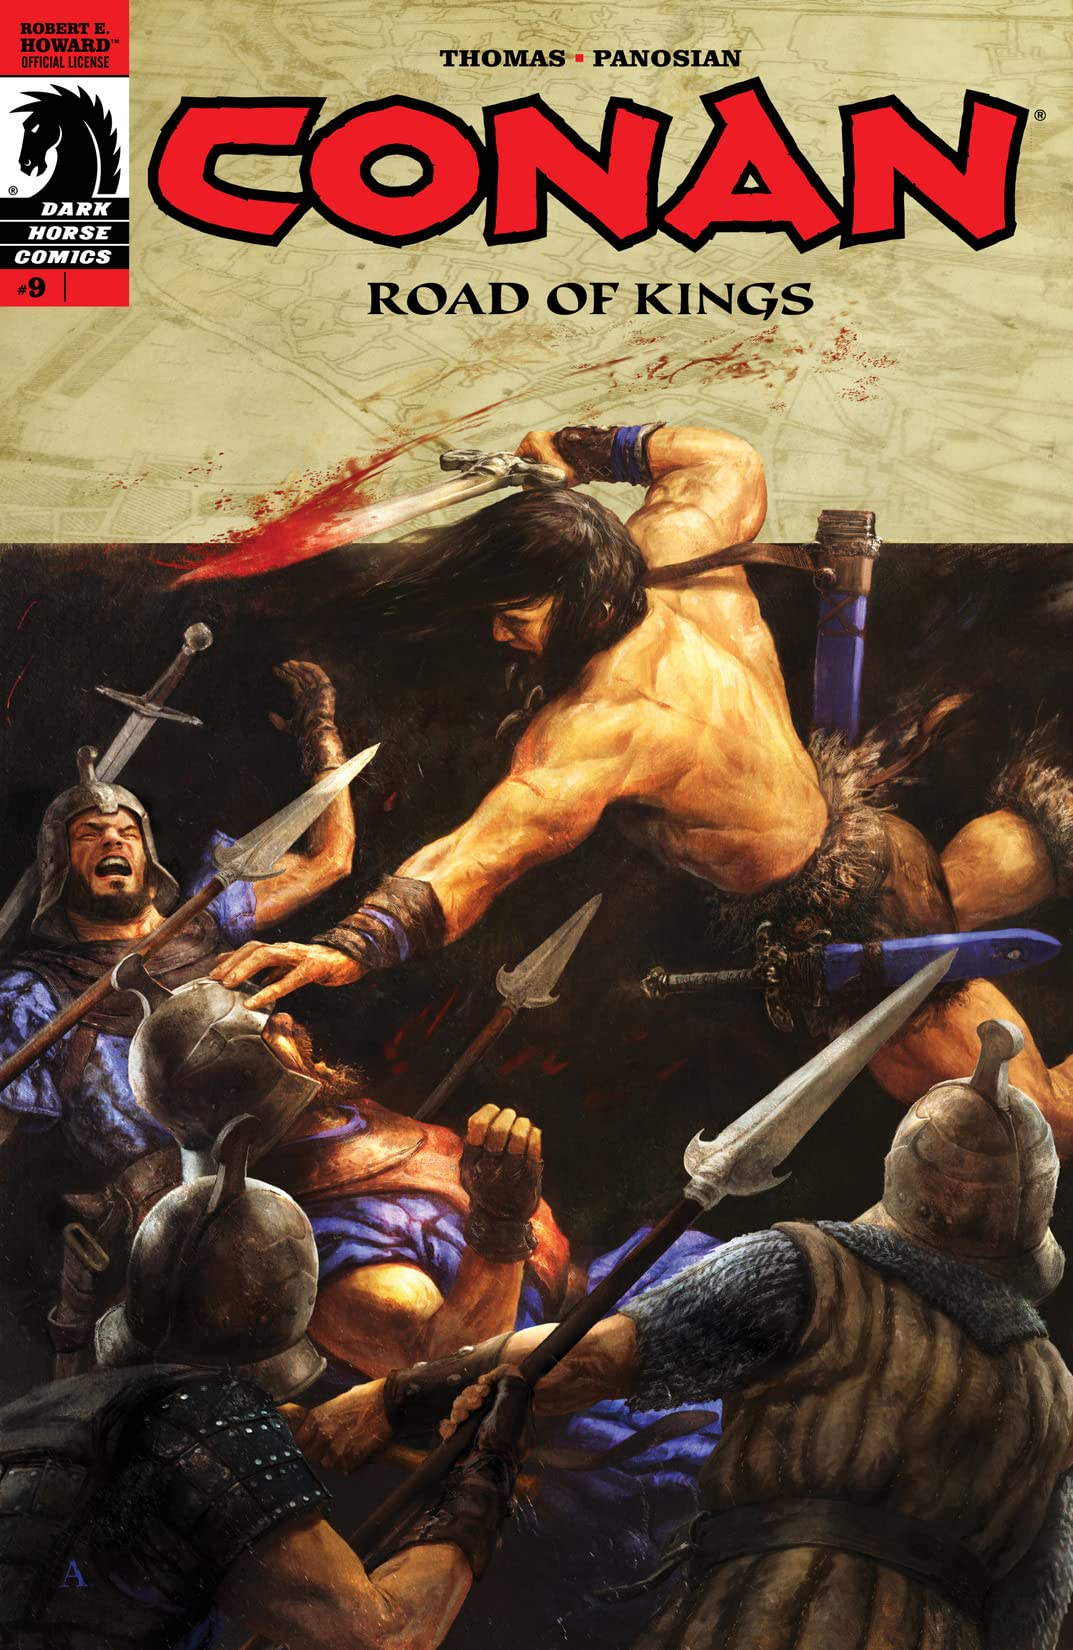 Conan: Road of Kings #9